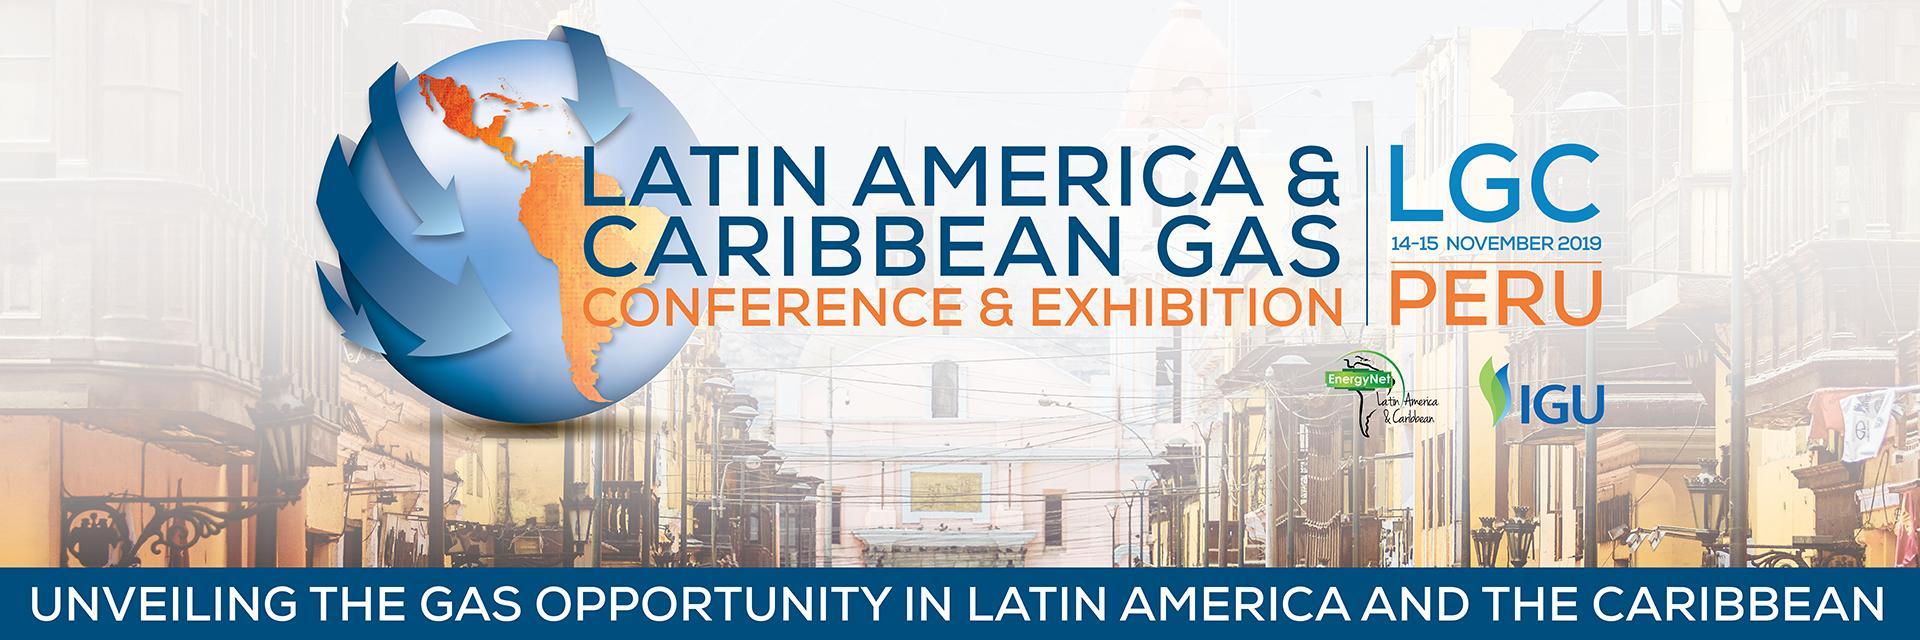 Latin America & Caribbean Gas Conference & Exhibition 14-15 November 2019 ad.